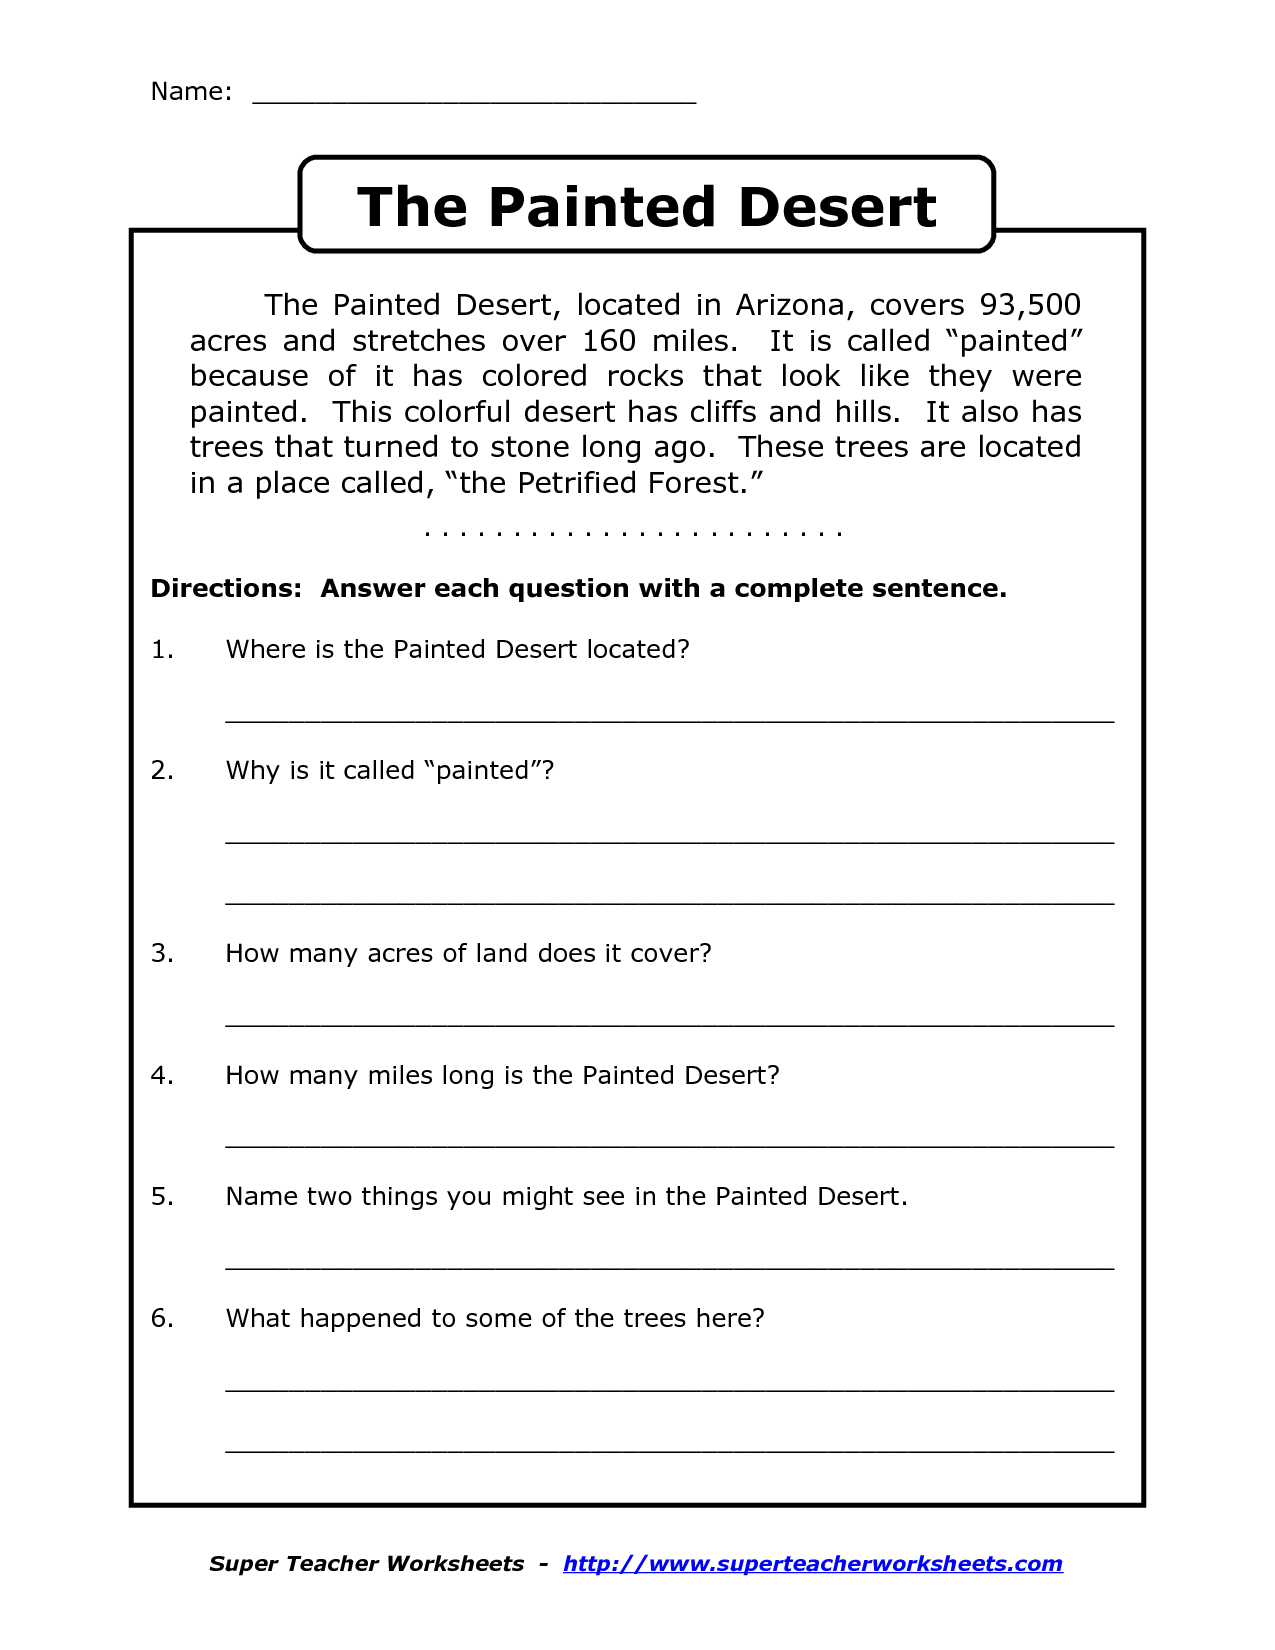 Reading Worksheets For 4Th Grade | Reading Comprehension Worksheets - Free Printable Reading Comprehension Worksheets Grade 5